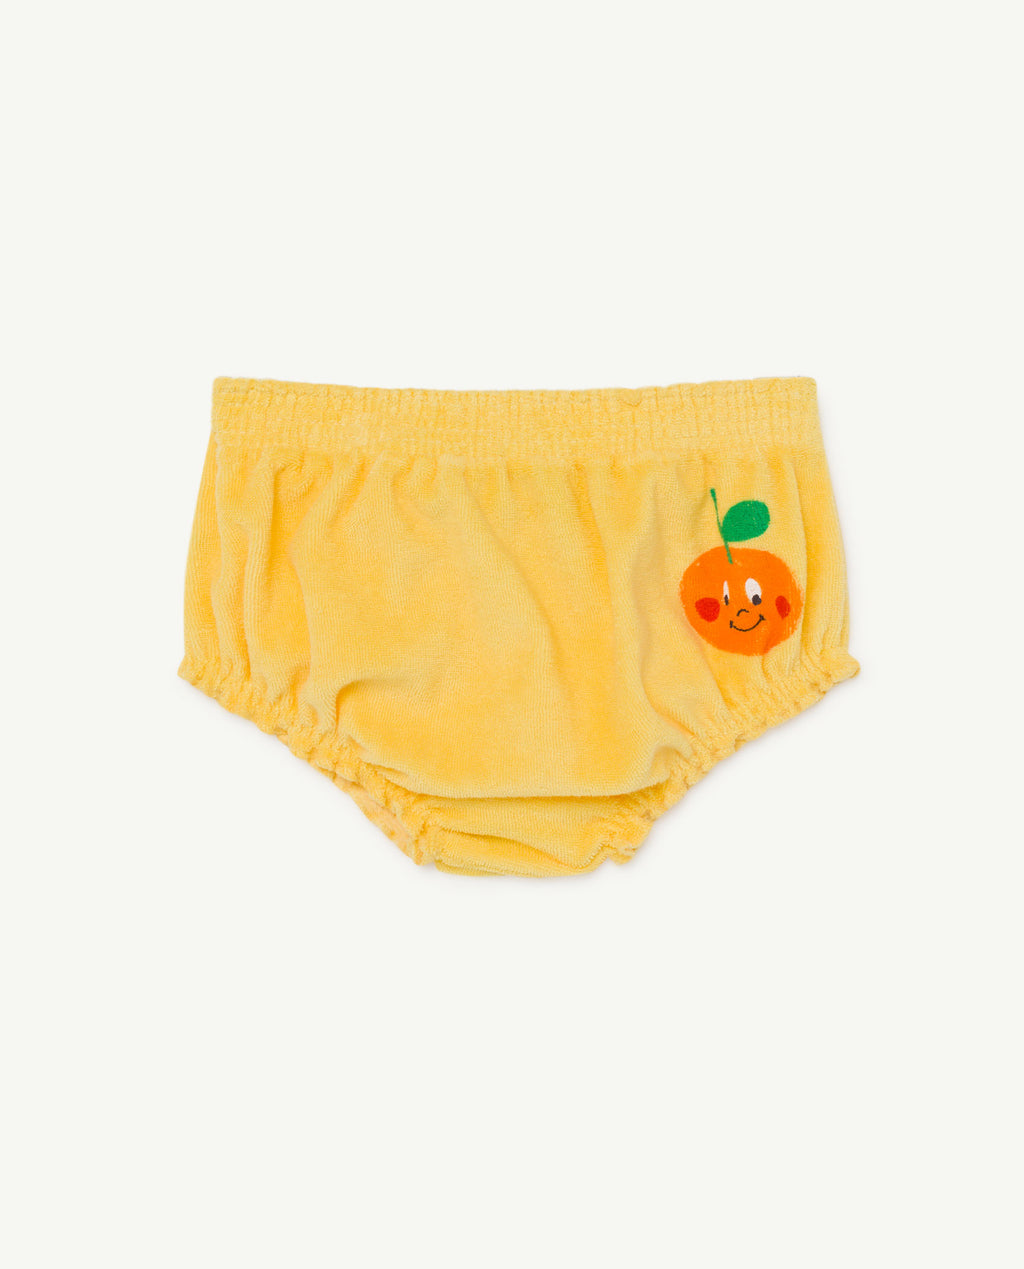 Toads Baby Culotte - Yellow Fruit